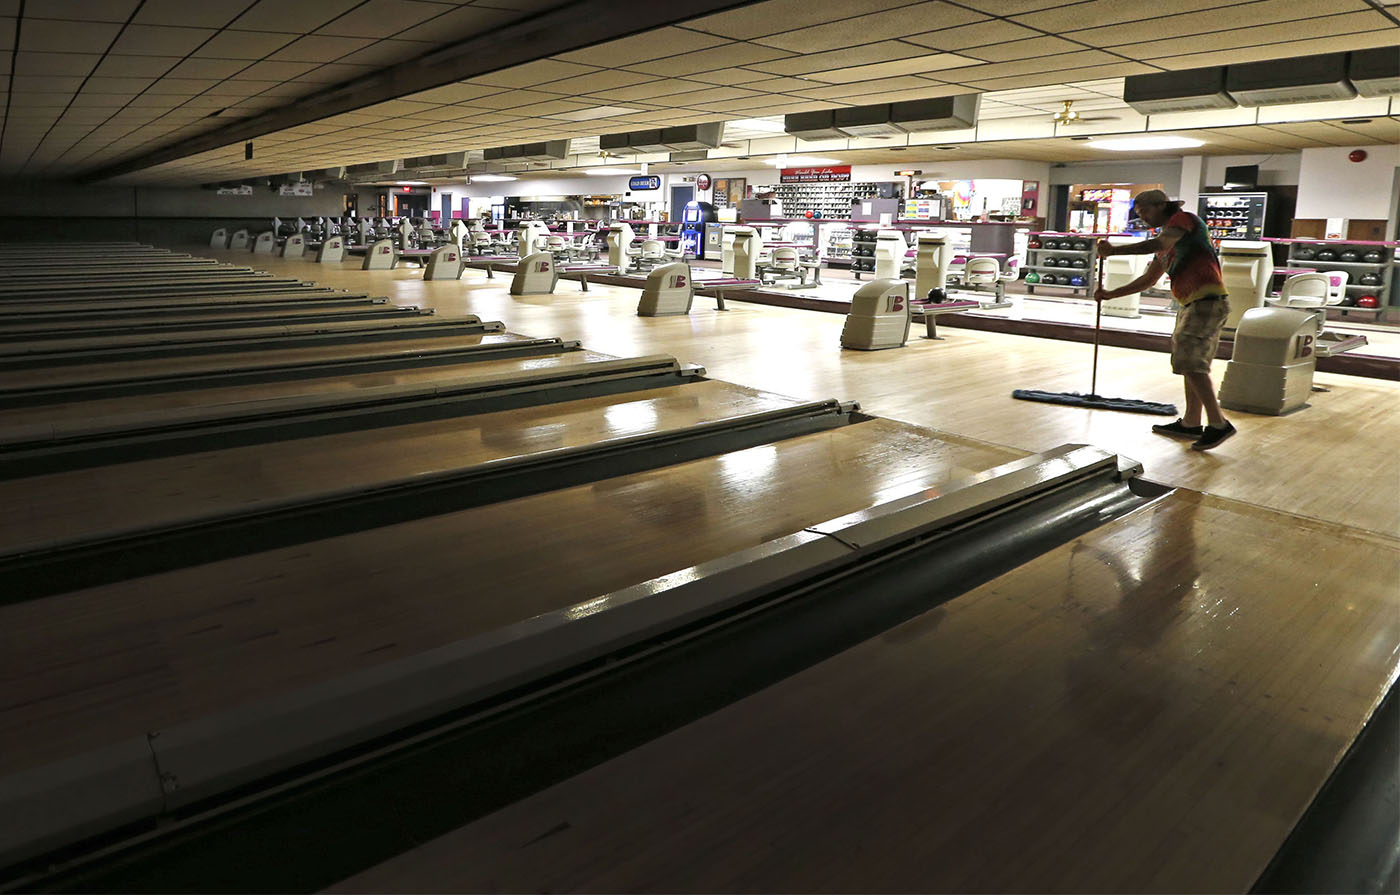 Jamie Ross sweeps on Monday, Aug. 8, 2016. Voelker's Lanes, which has been an entertainment hotbed in Buffalo since 1892. The Elmwood Avenue landmark is known for its colorful, flashing neon sign, vintage barroom and the sights and sounds of bowling. (Robert Kirkham/Buffalo News)